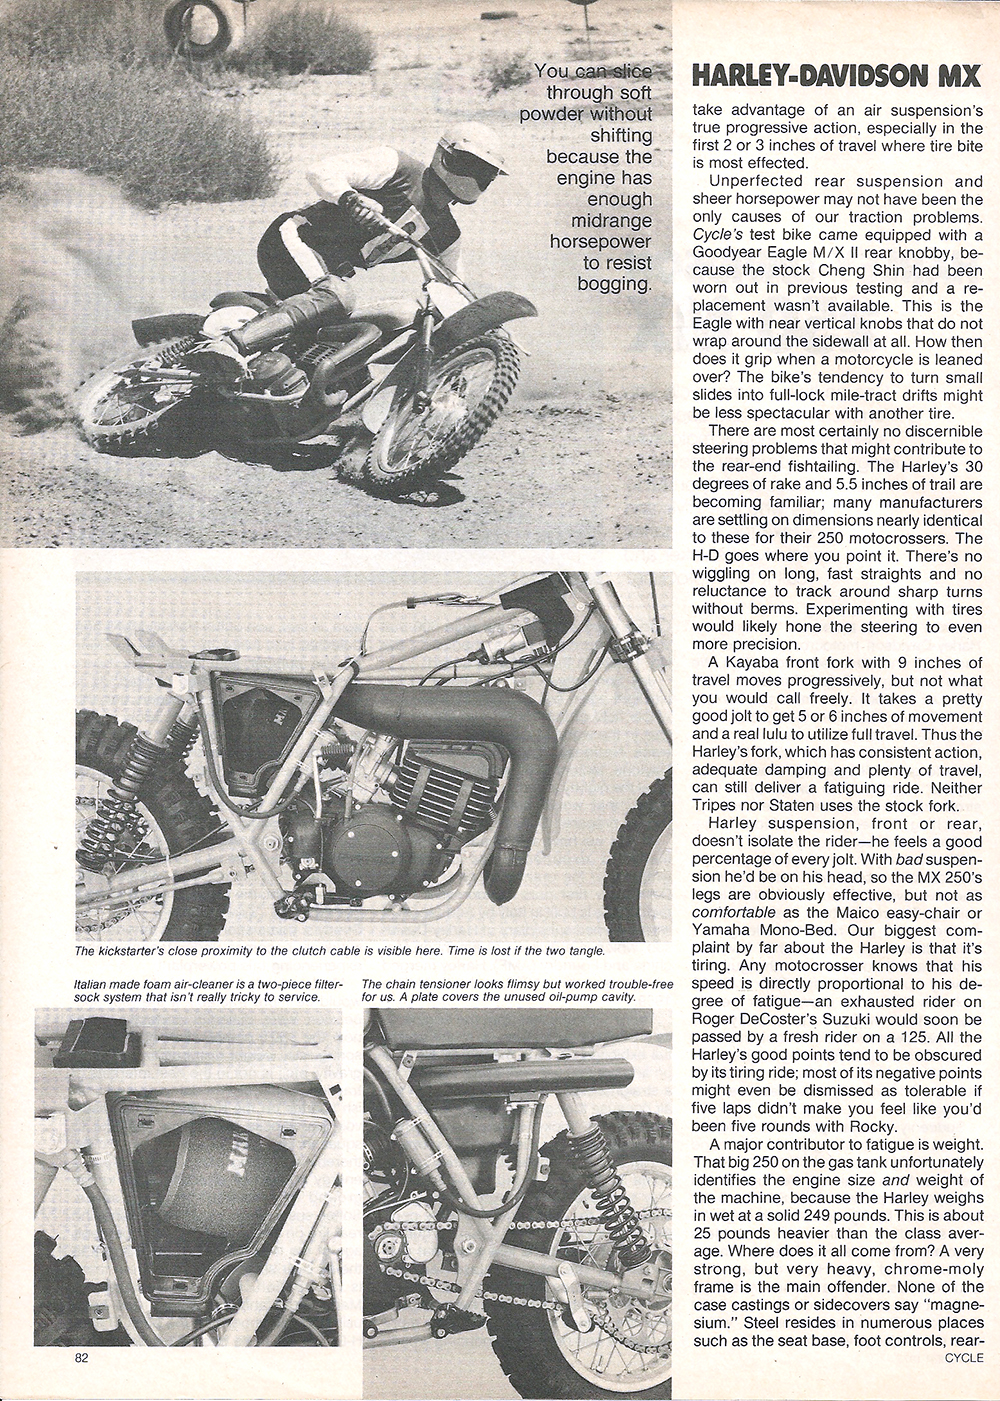 1977 Harley Davidson 250 MX road test 3.jpg